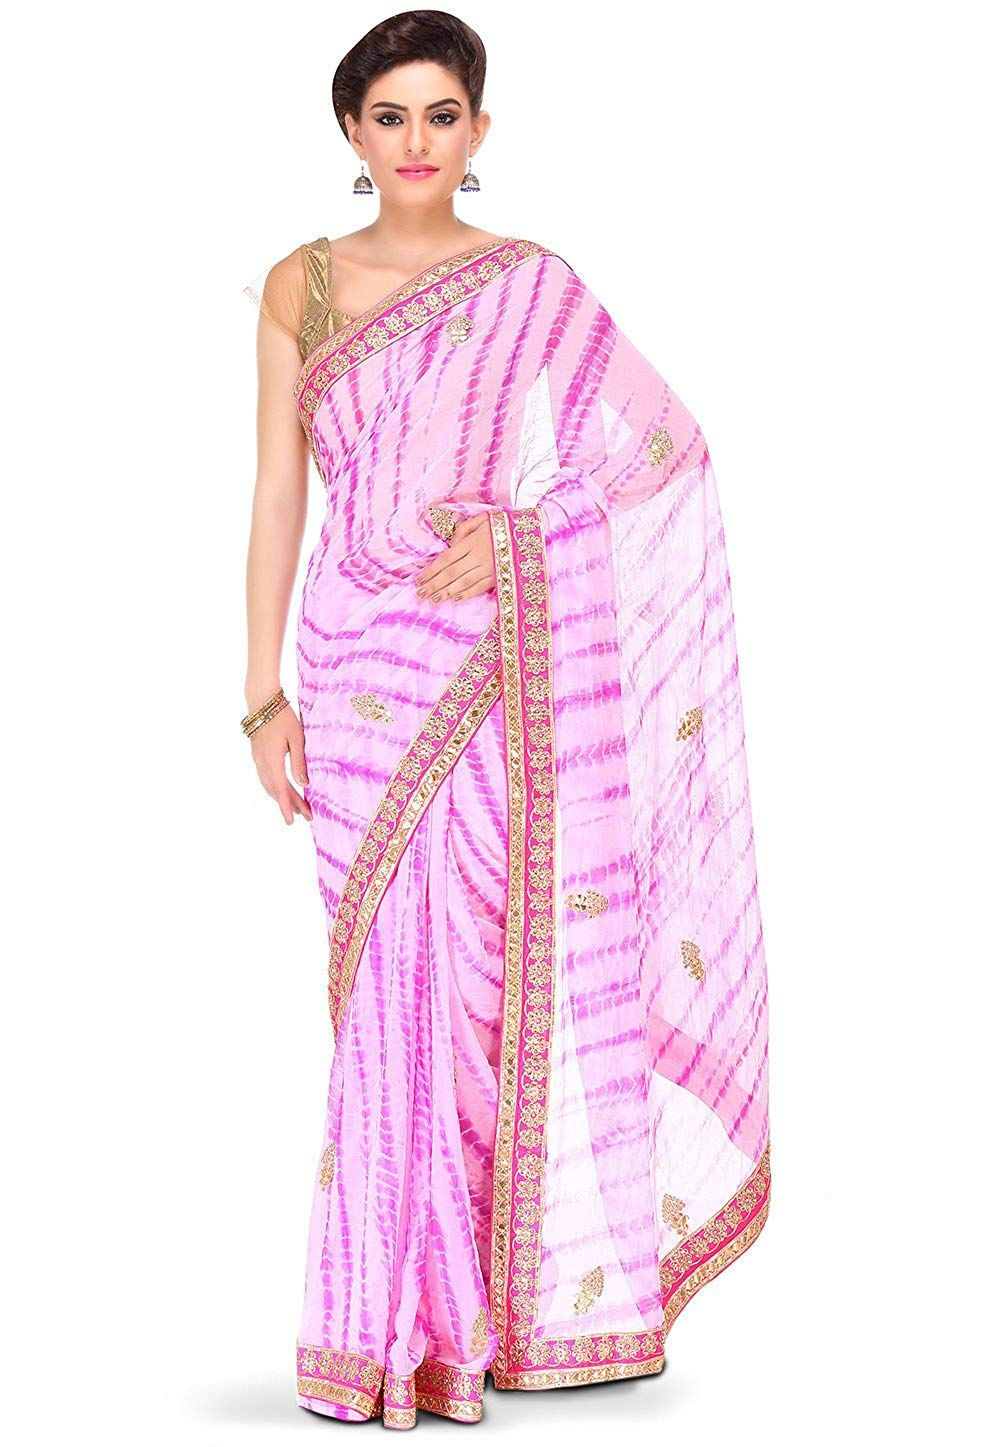 7880d2e8c8 Rajasthani Look Women's Embroidered Georgette Saree in Pink: Amazon.in:  Clothing & Accessories. Find this Pin and more on Saree by Indian fashion.